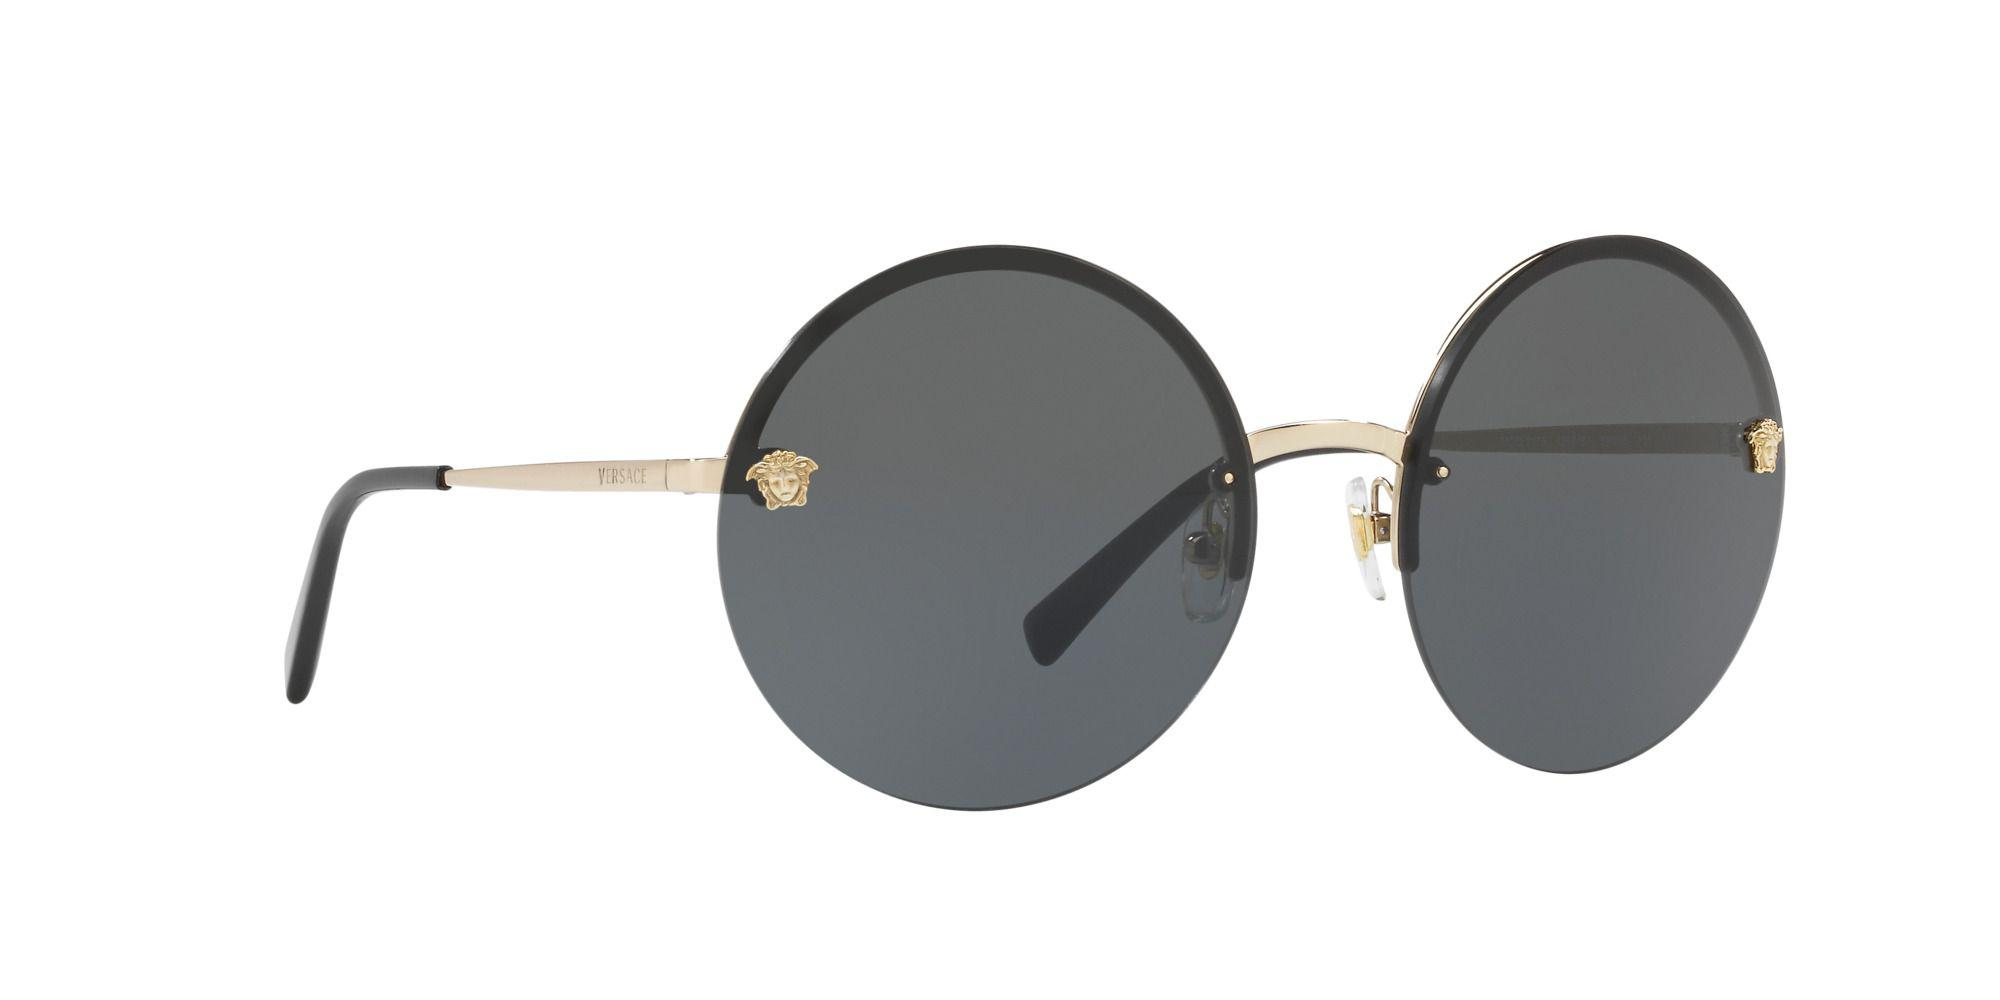 5deab20faf Versace Pale Gold Ve2176 Round Sunglasses in Gray - Lyst